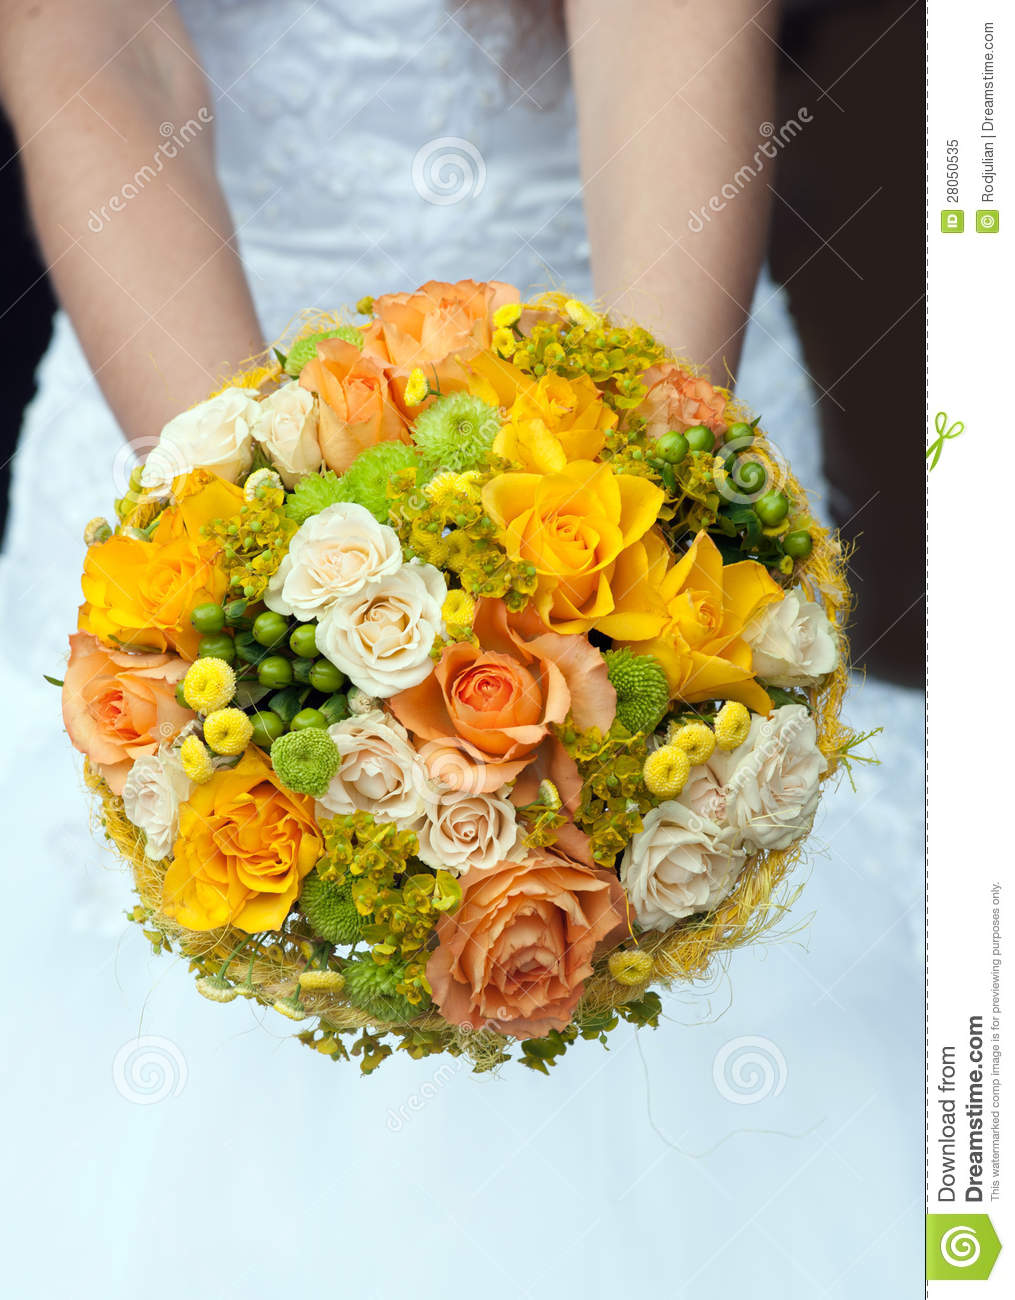 Wedding Bouquet With Yellow And Orange Roses Stock Image Image Of